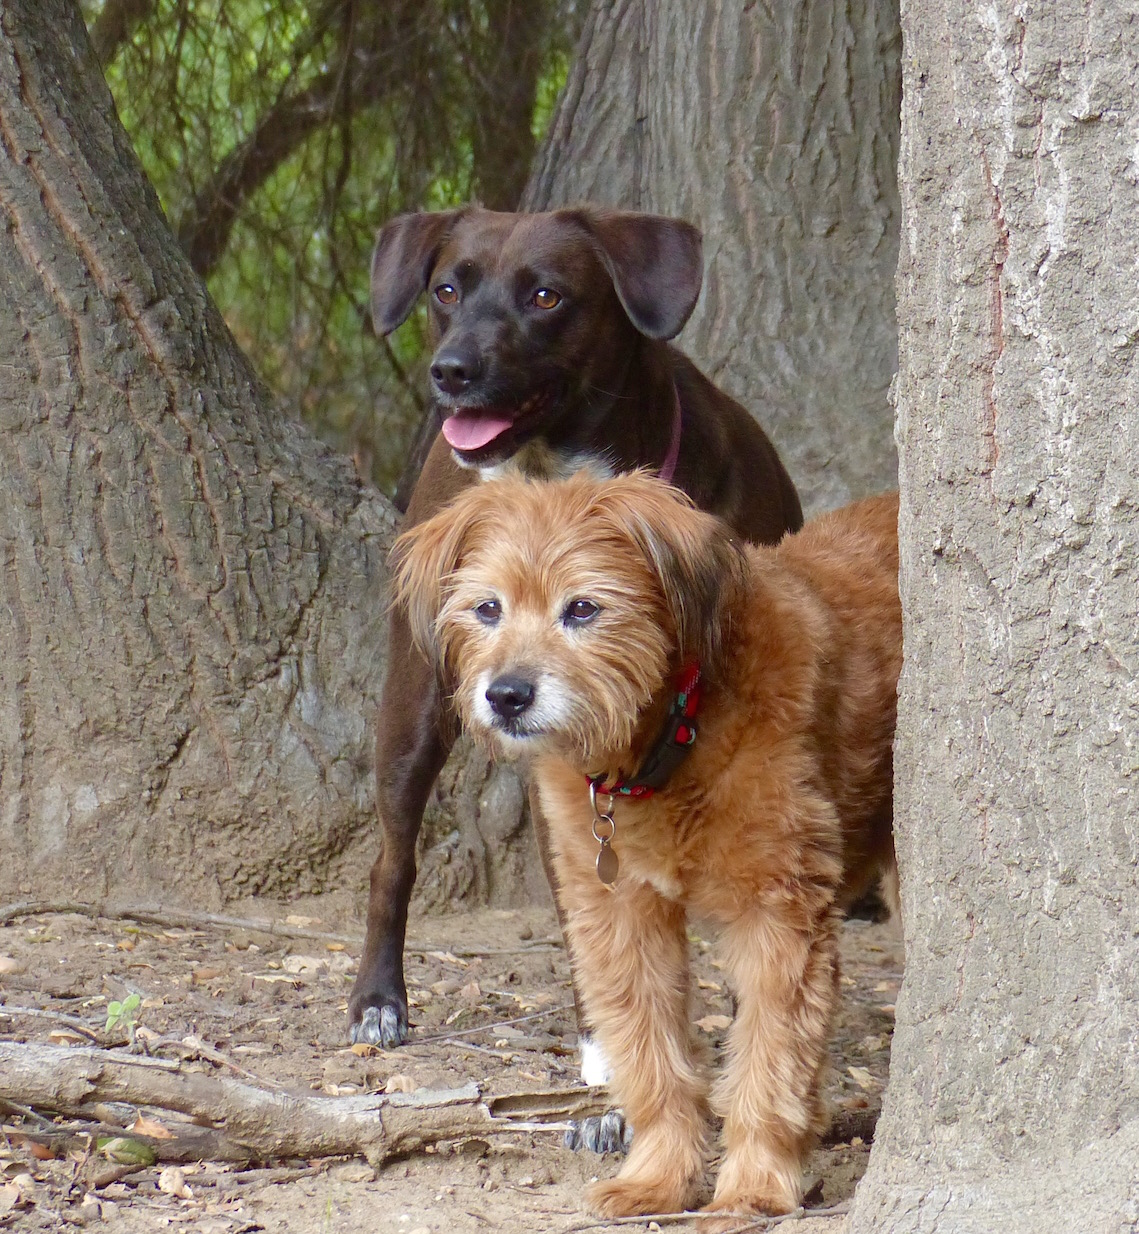 """THE MAIN DIFFERENCE BETWEEN DOMESTIC DOGS & THEIR WOLF COUSINS IS LOCATED IN THE BRAIN. EVEN IN THE 'WILD"""" OUR ADORED PETS ARE JUST NOT AS MATURE. IMAGE: R. KRAVETTE"""